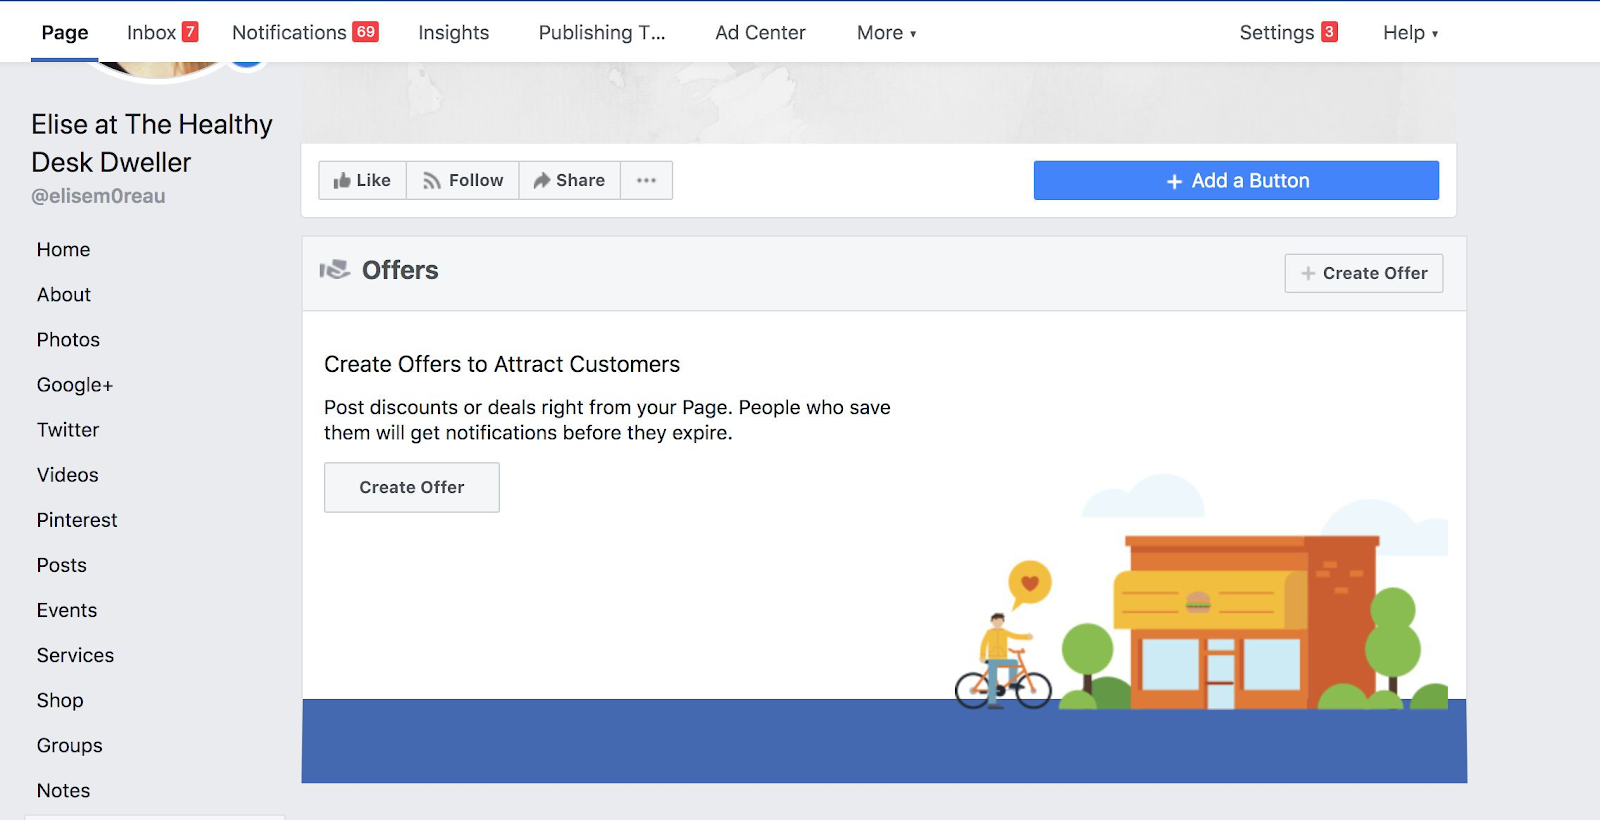 How To Create an Offer on Facebook | Facebook Lead Generation